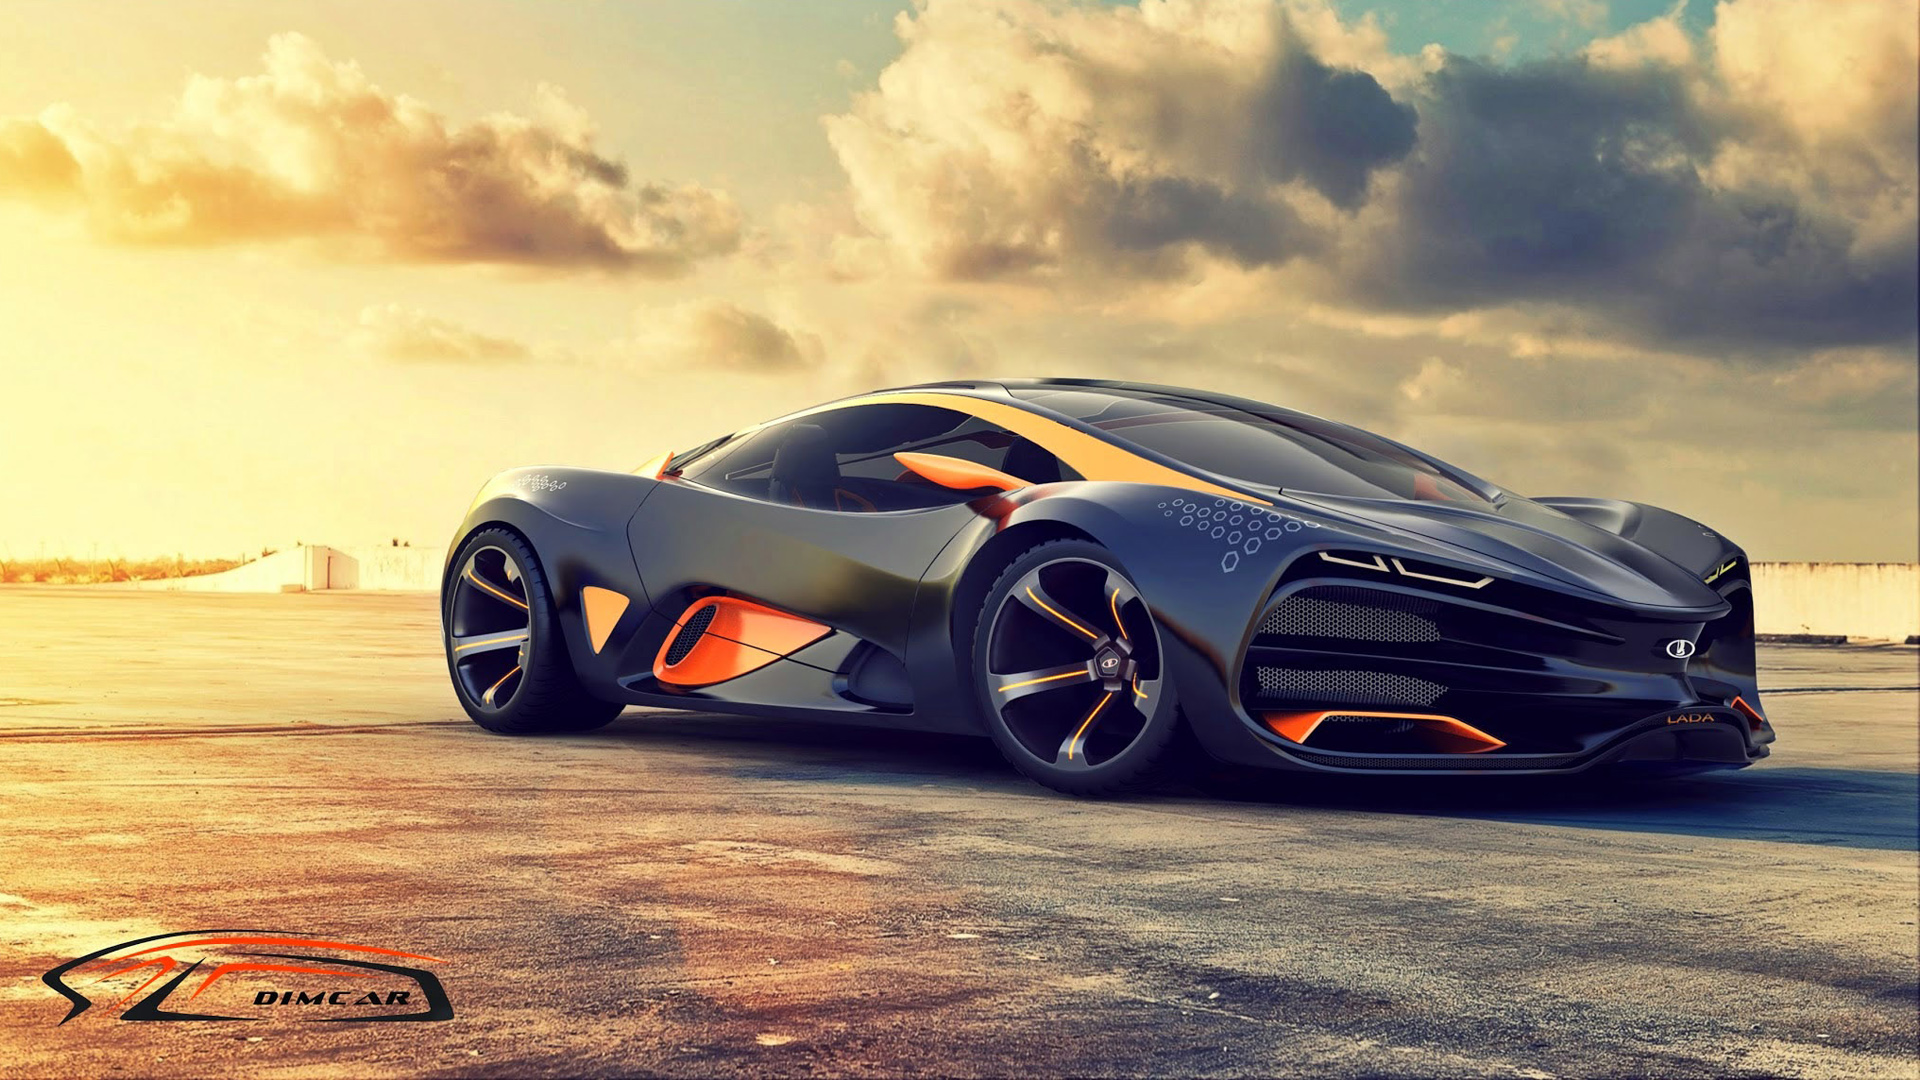 2015 lada raven supercar concept 2 wallpaper | hd car wallpapers